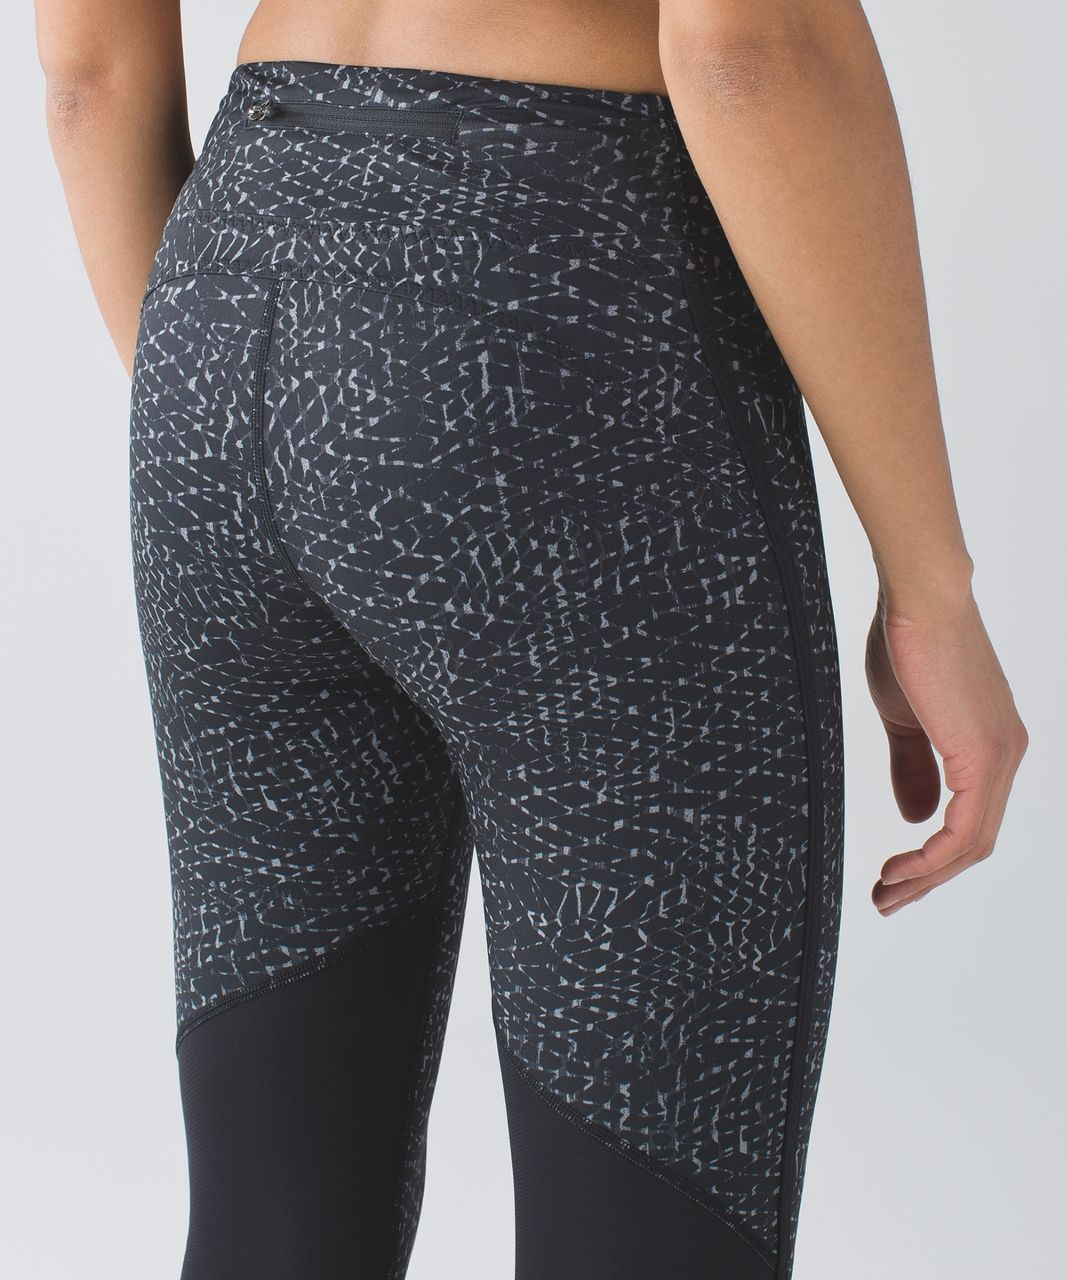 Lululemon Real Quick Crop *Full-On Luxtreme - Samba Snake Battleship Black / Black